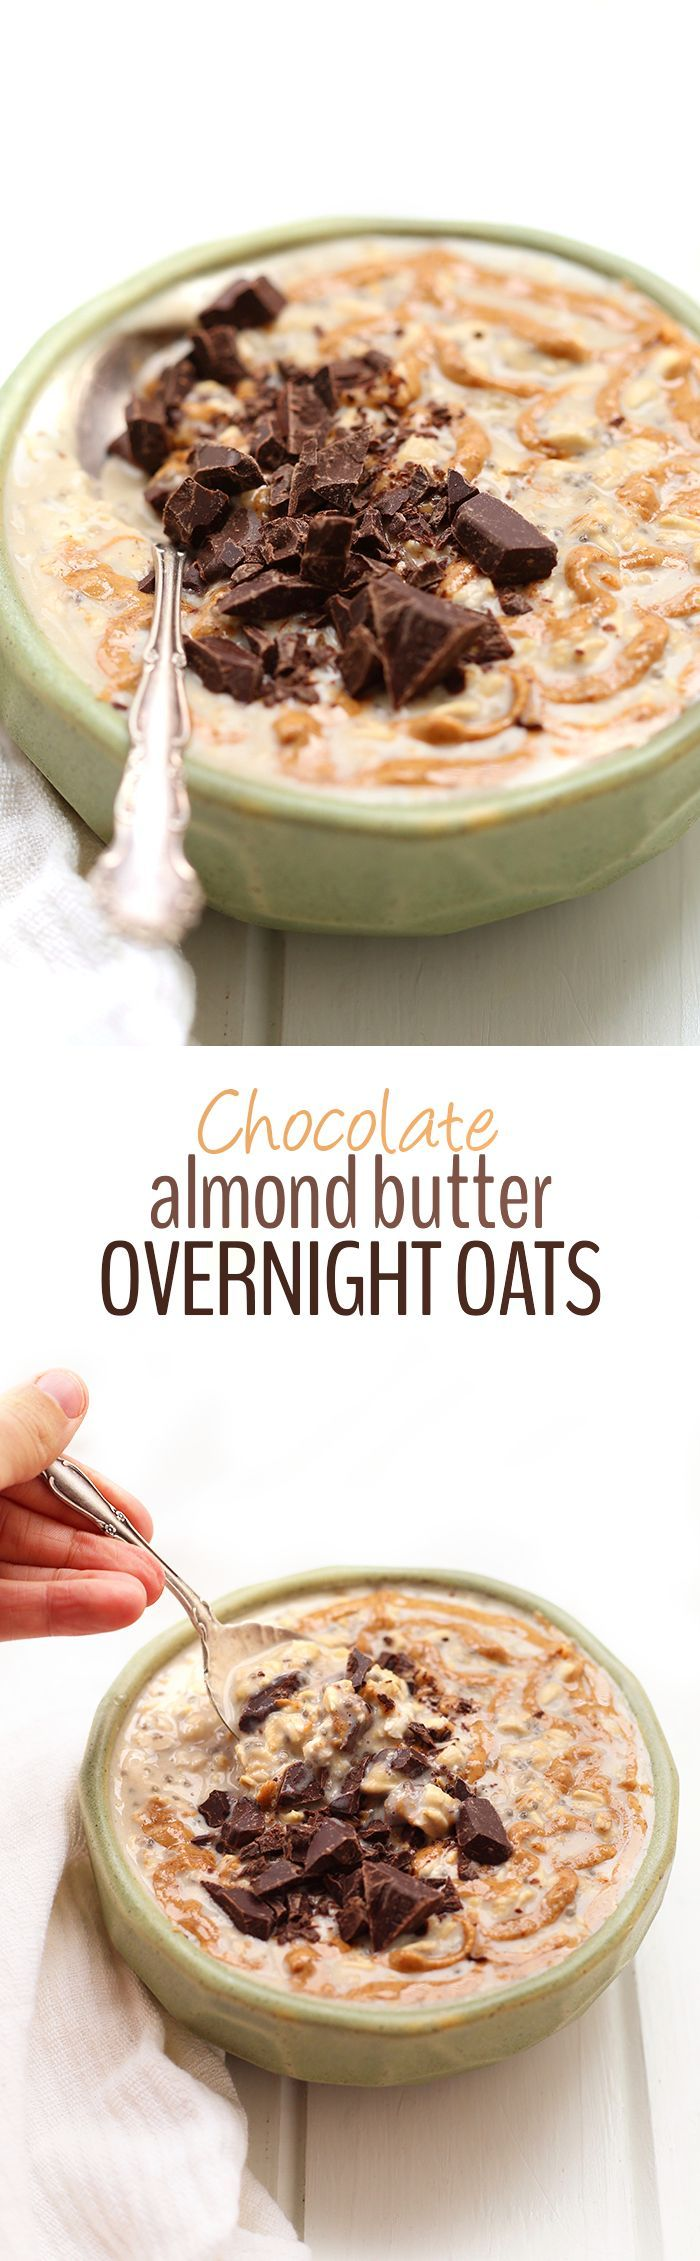 A simple and easy breakfast recipe, this Chocolate Almond Butter Overnight Oats will become a new morning favorite. Just throw all the ingredients into a jar and let it sit overnight for a healthy and fun breakfast in the AM!